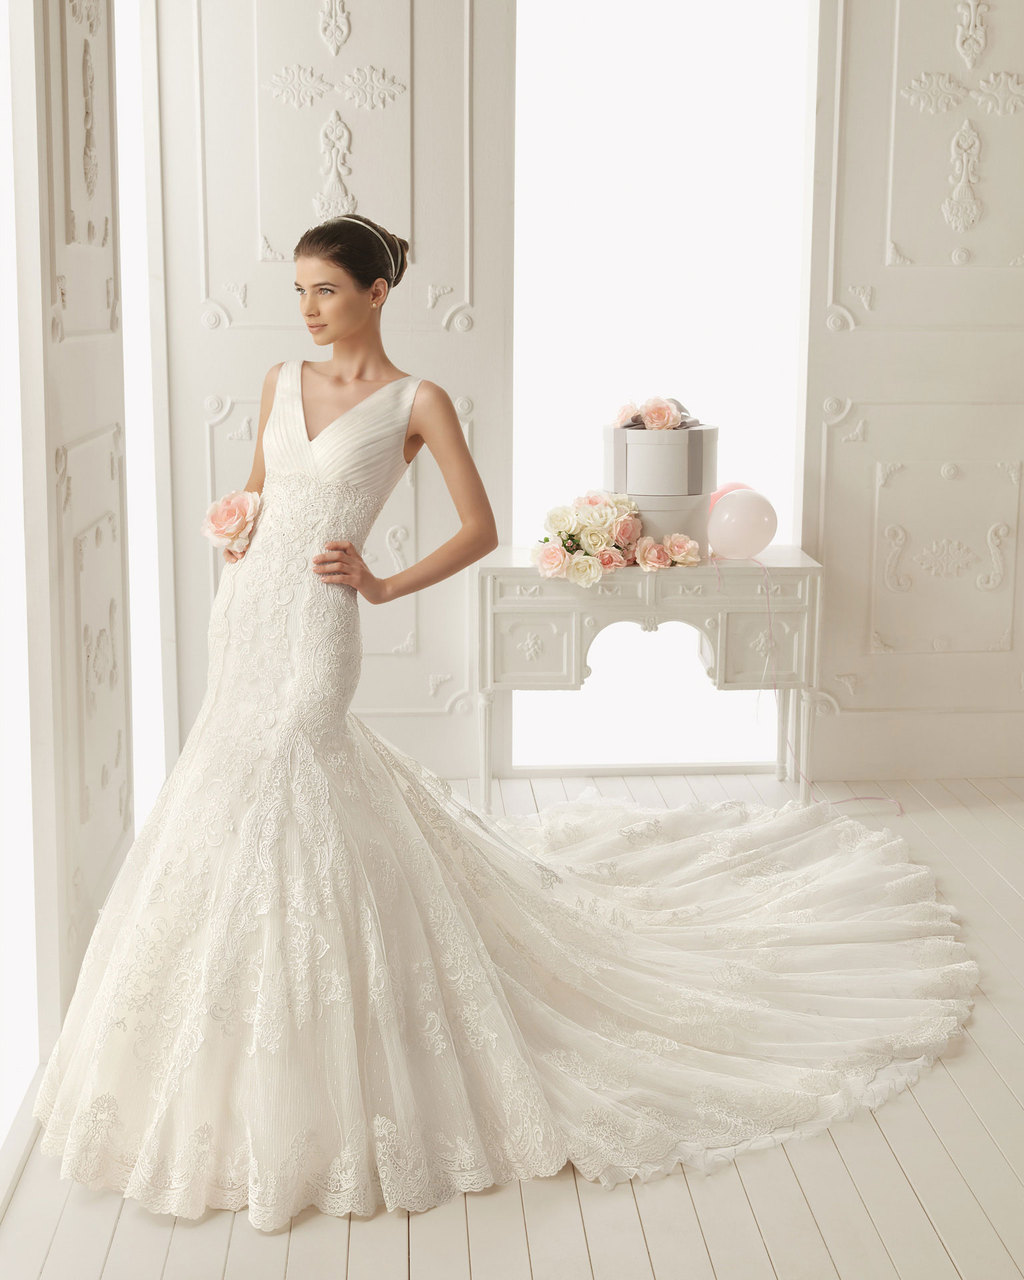 2013 wedding dress by Aire Barcelona bridal gowns Radiente